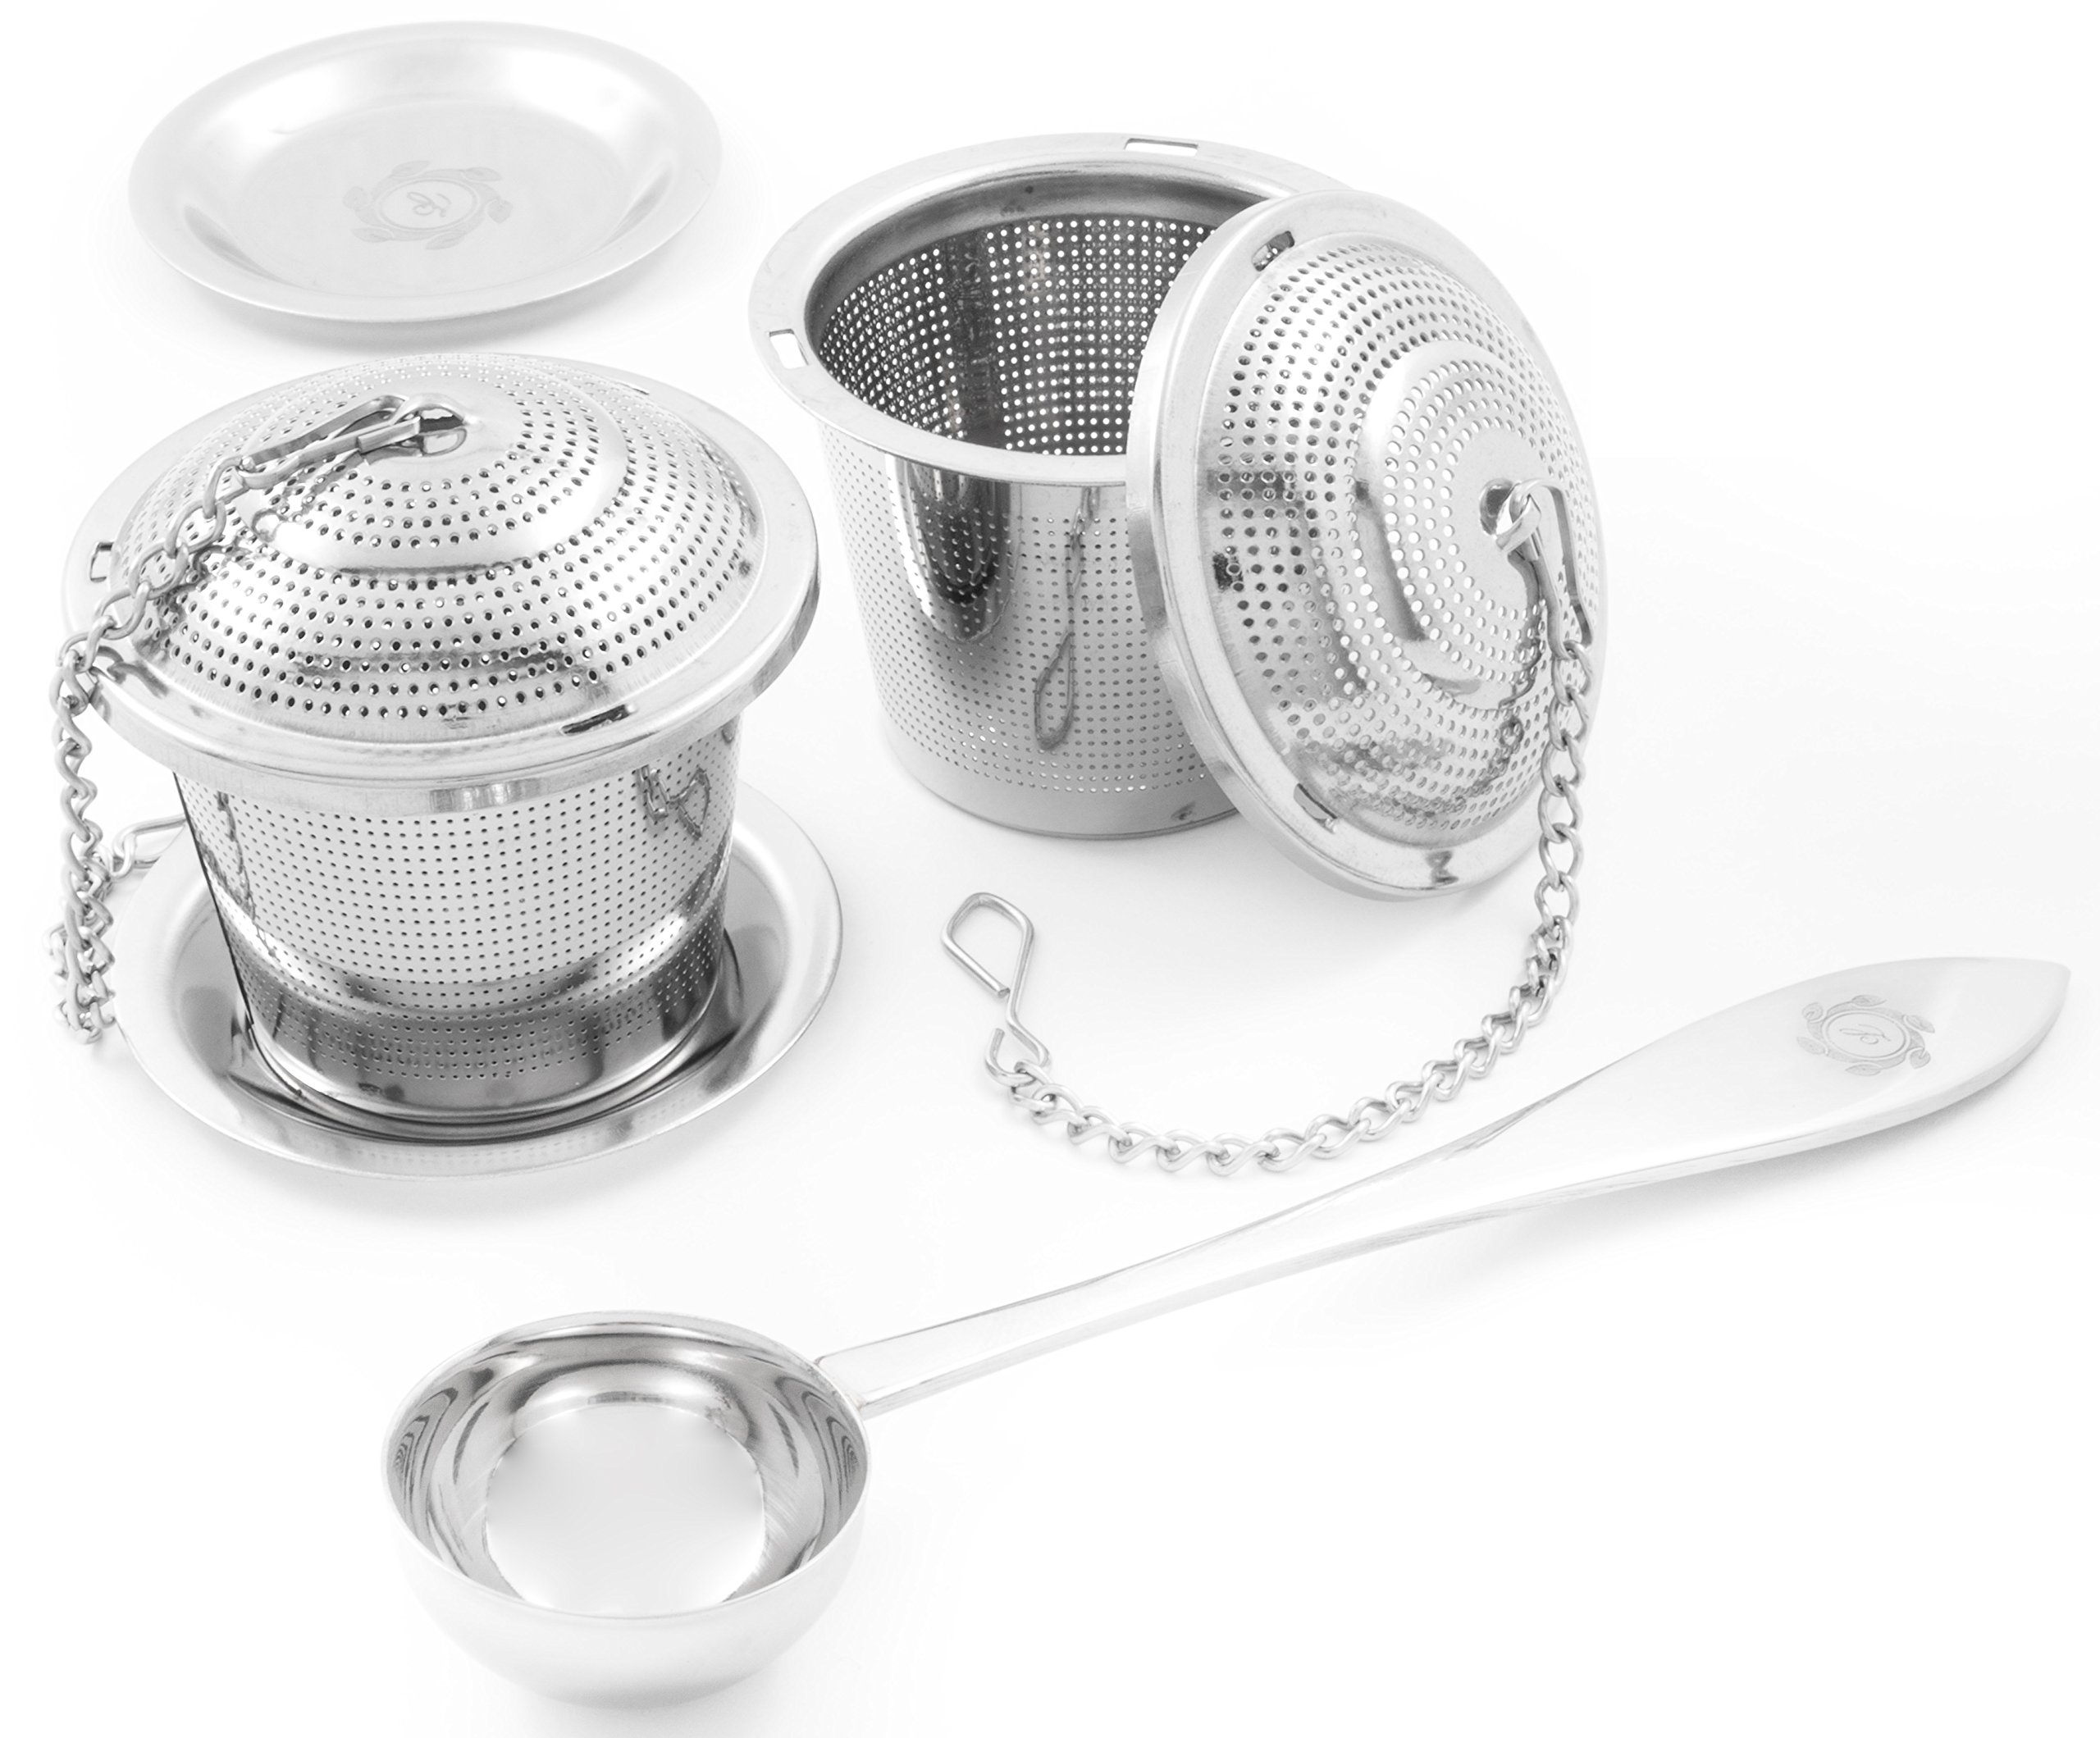 LuvlyTea Loose Leaf Tea Infuser (Set of 2) Including Tea Scoop and Drip Trays - Best Premium Stainless Steel Strainer & Steeper!